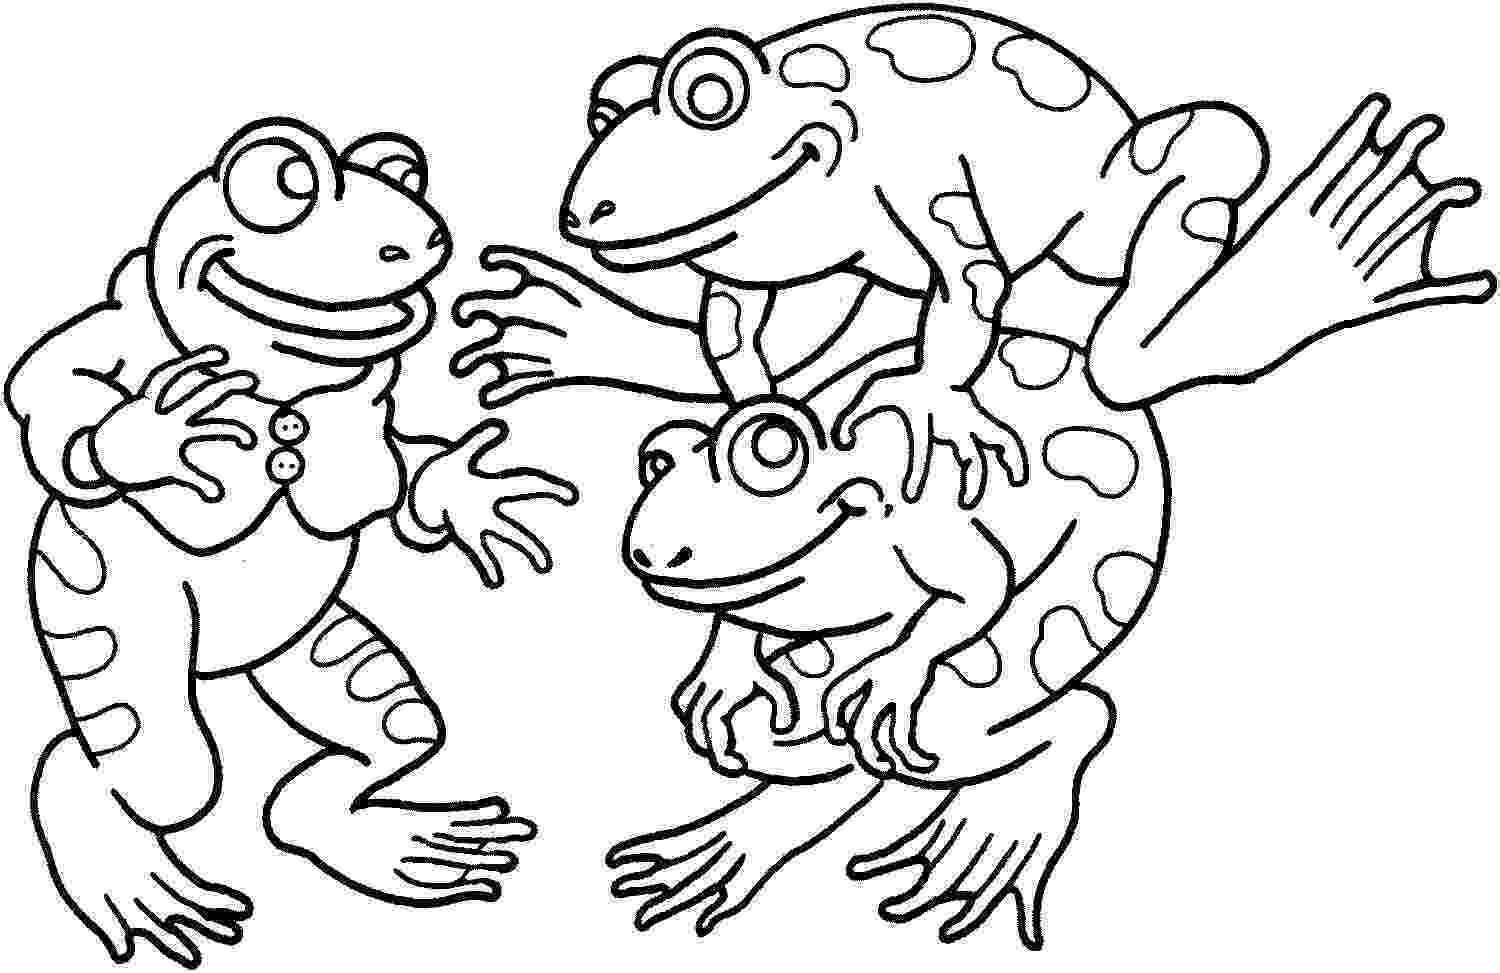 frog color by number free printable frog coloring pages for kids color number frog by